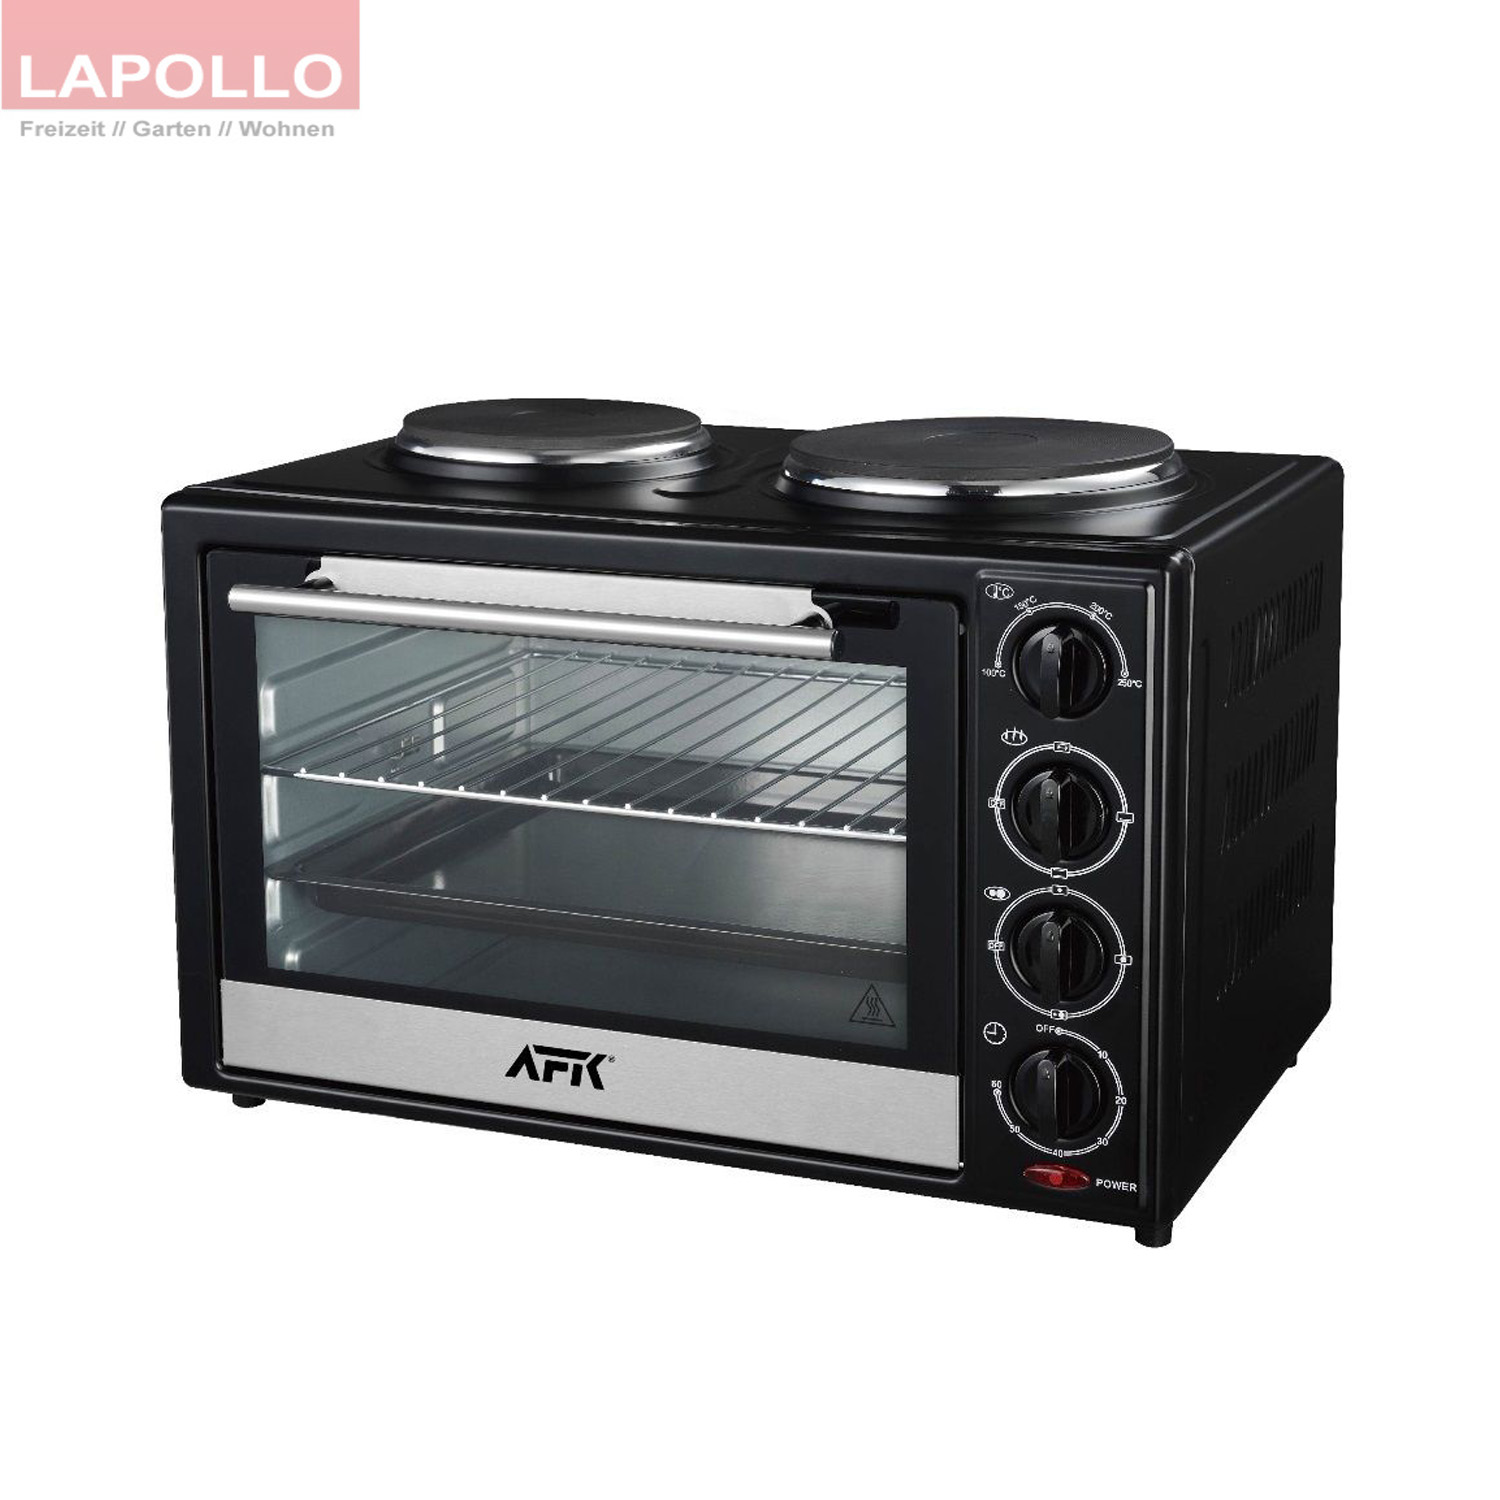 backofen mit doppelkochplatte 35 l kochplatte minibackofen pizzaofen ofen spie ebay. Black Bedroom Furniture Sets. Home Design Ideas